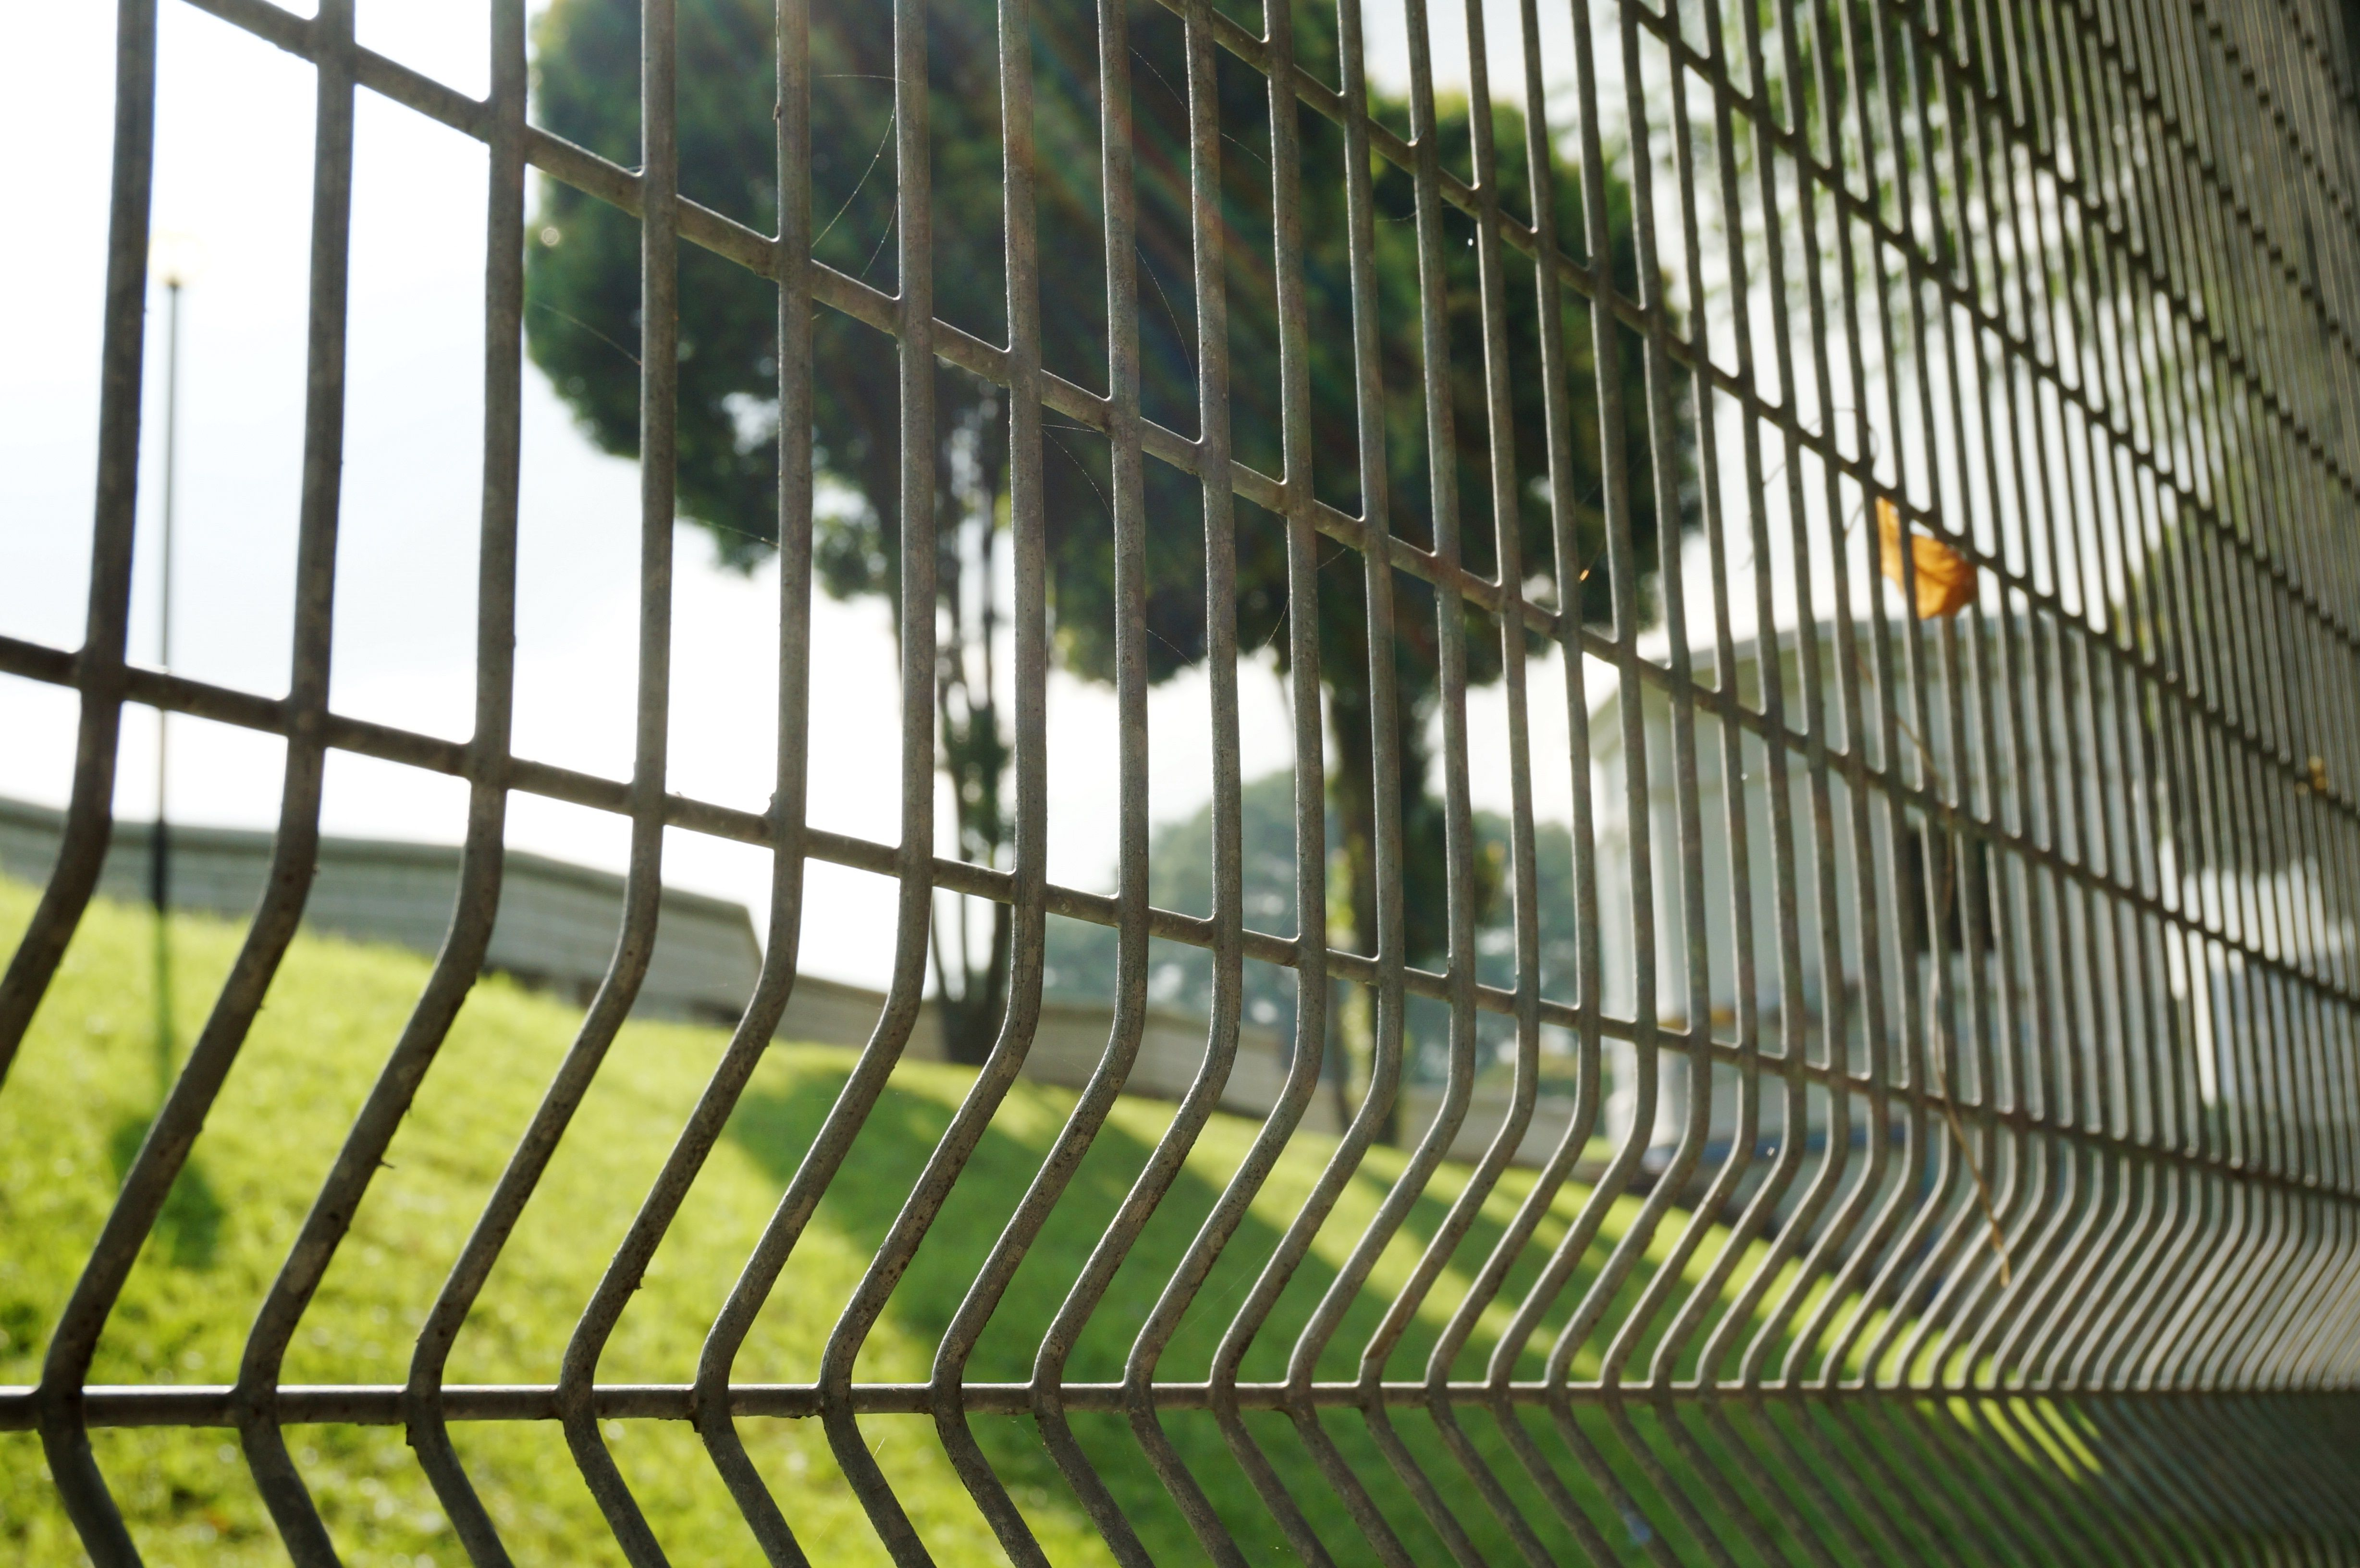 The fence between us and the Fort Canning Reservoir. Really amazed of how they managed to have a reservoir underground!